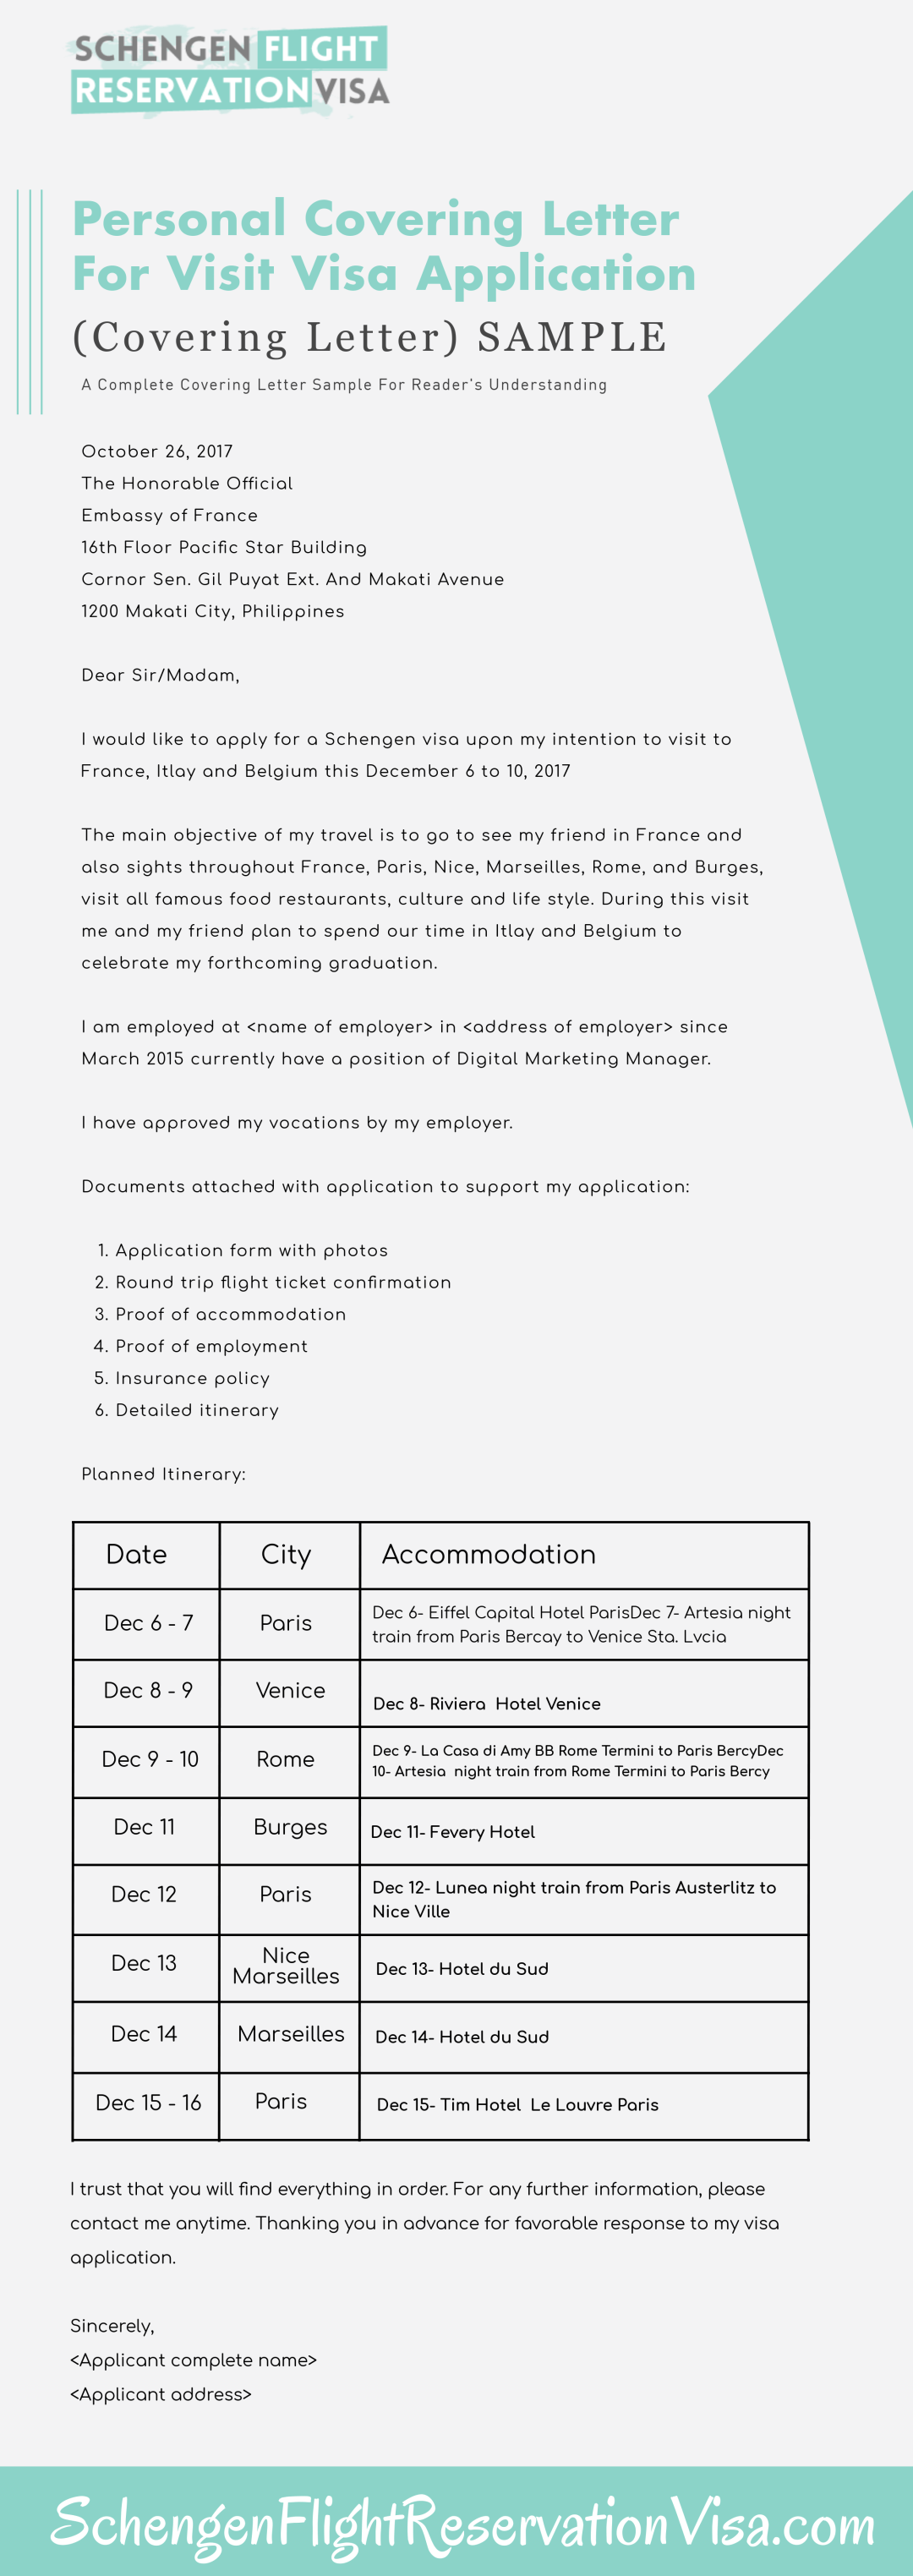 Personal covering letter guide and samples for visa application process personal covering letter for visit visa application altavistaventures Gallery